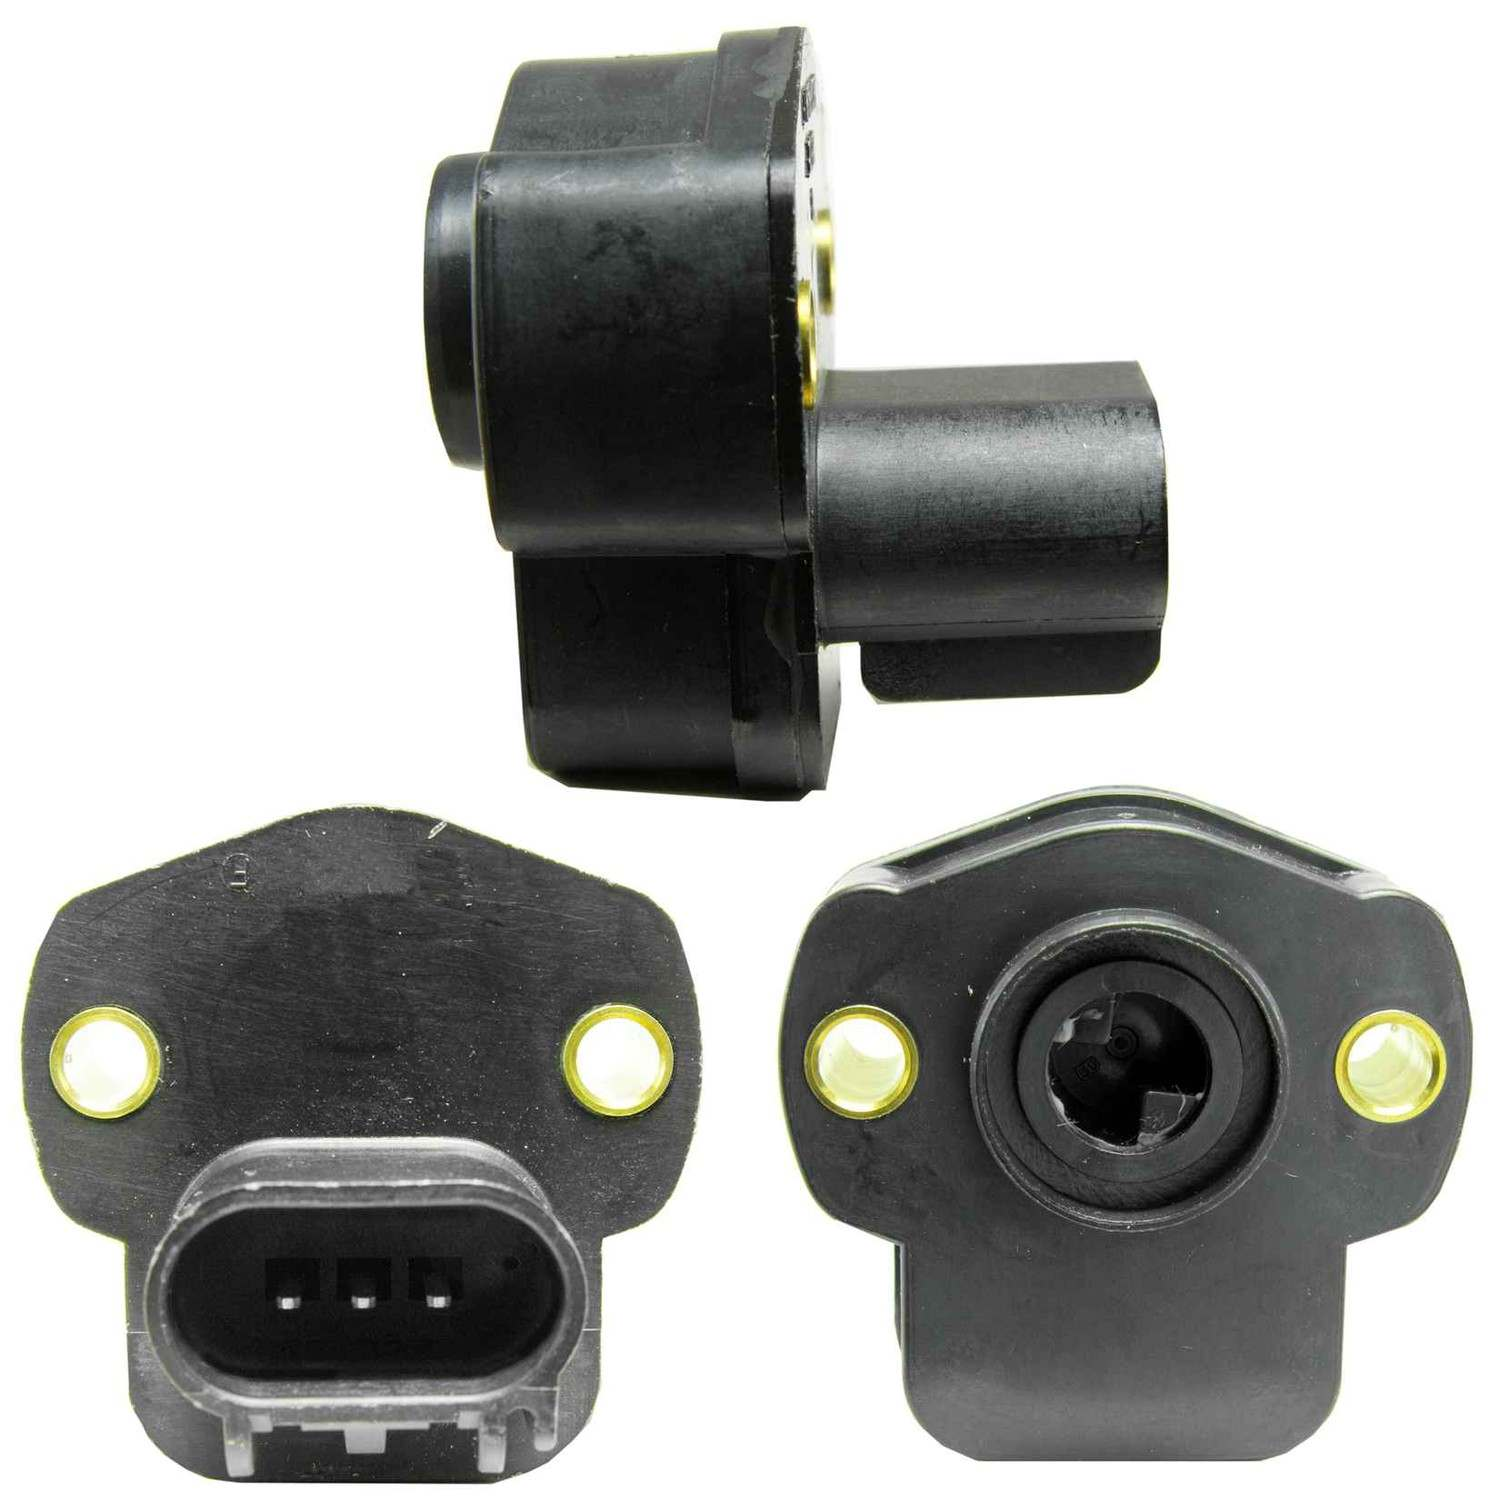 2005 DODGE RAM 1500 Throttle Position Sensor Parts